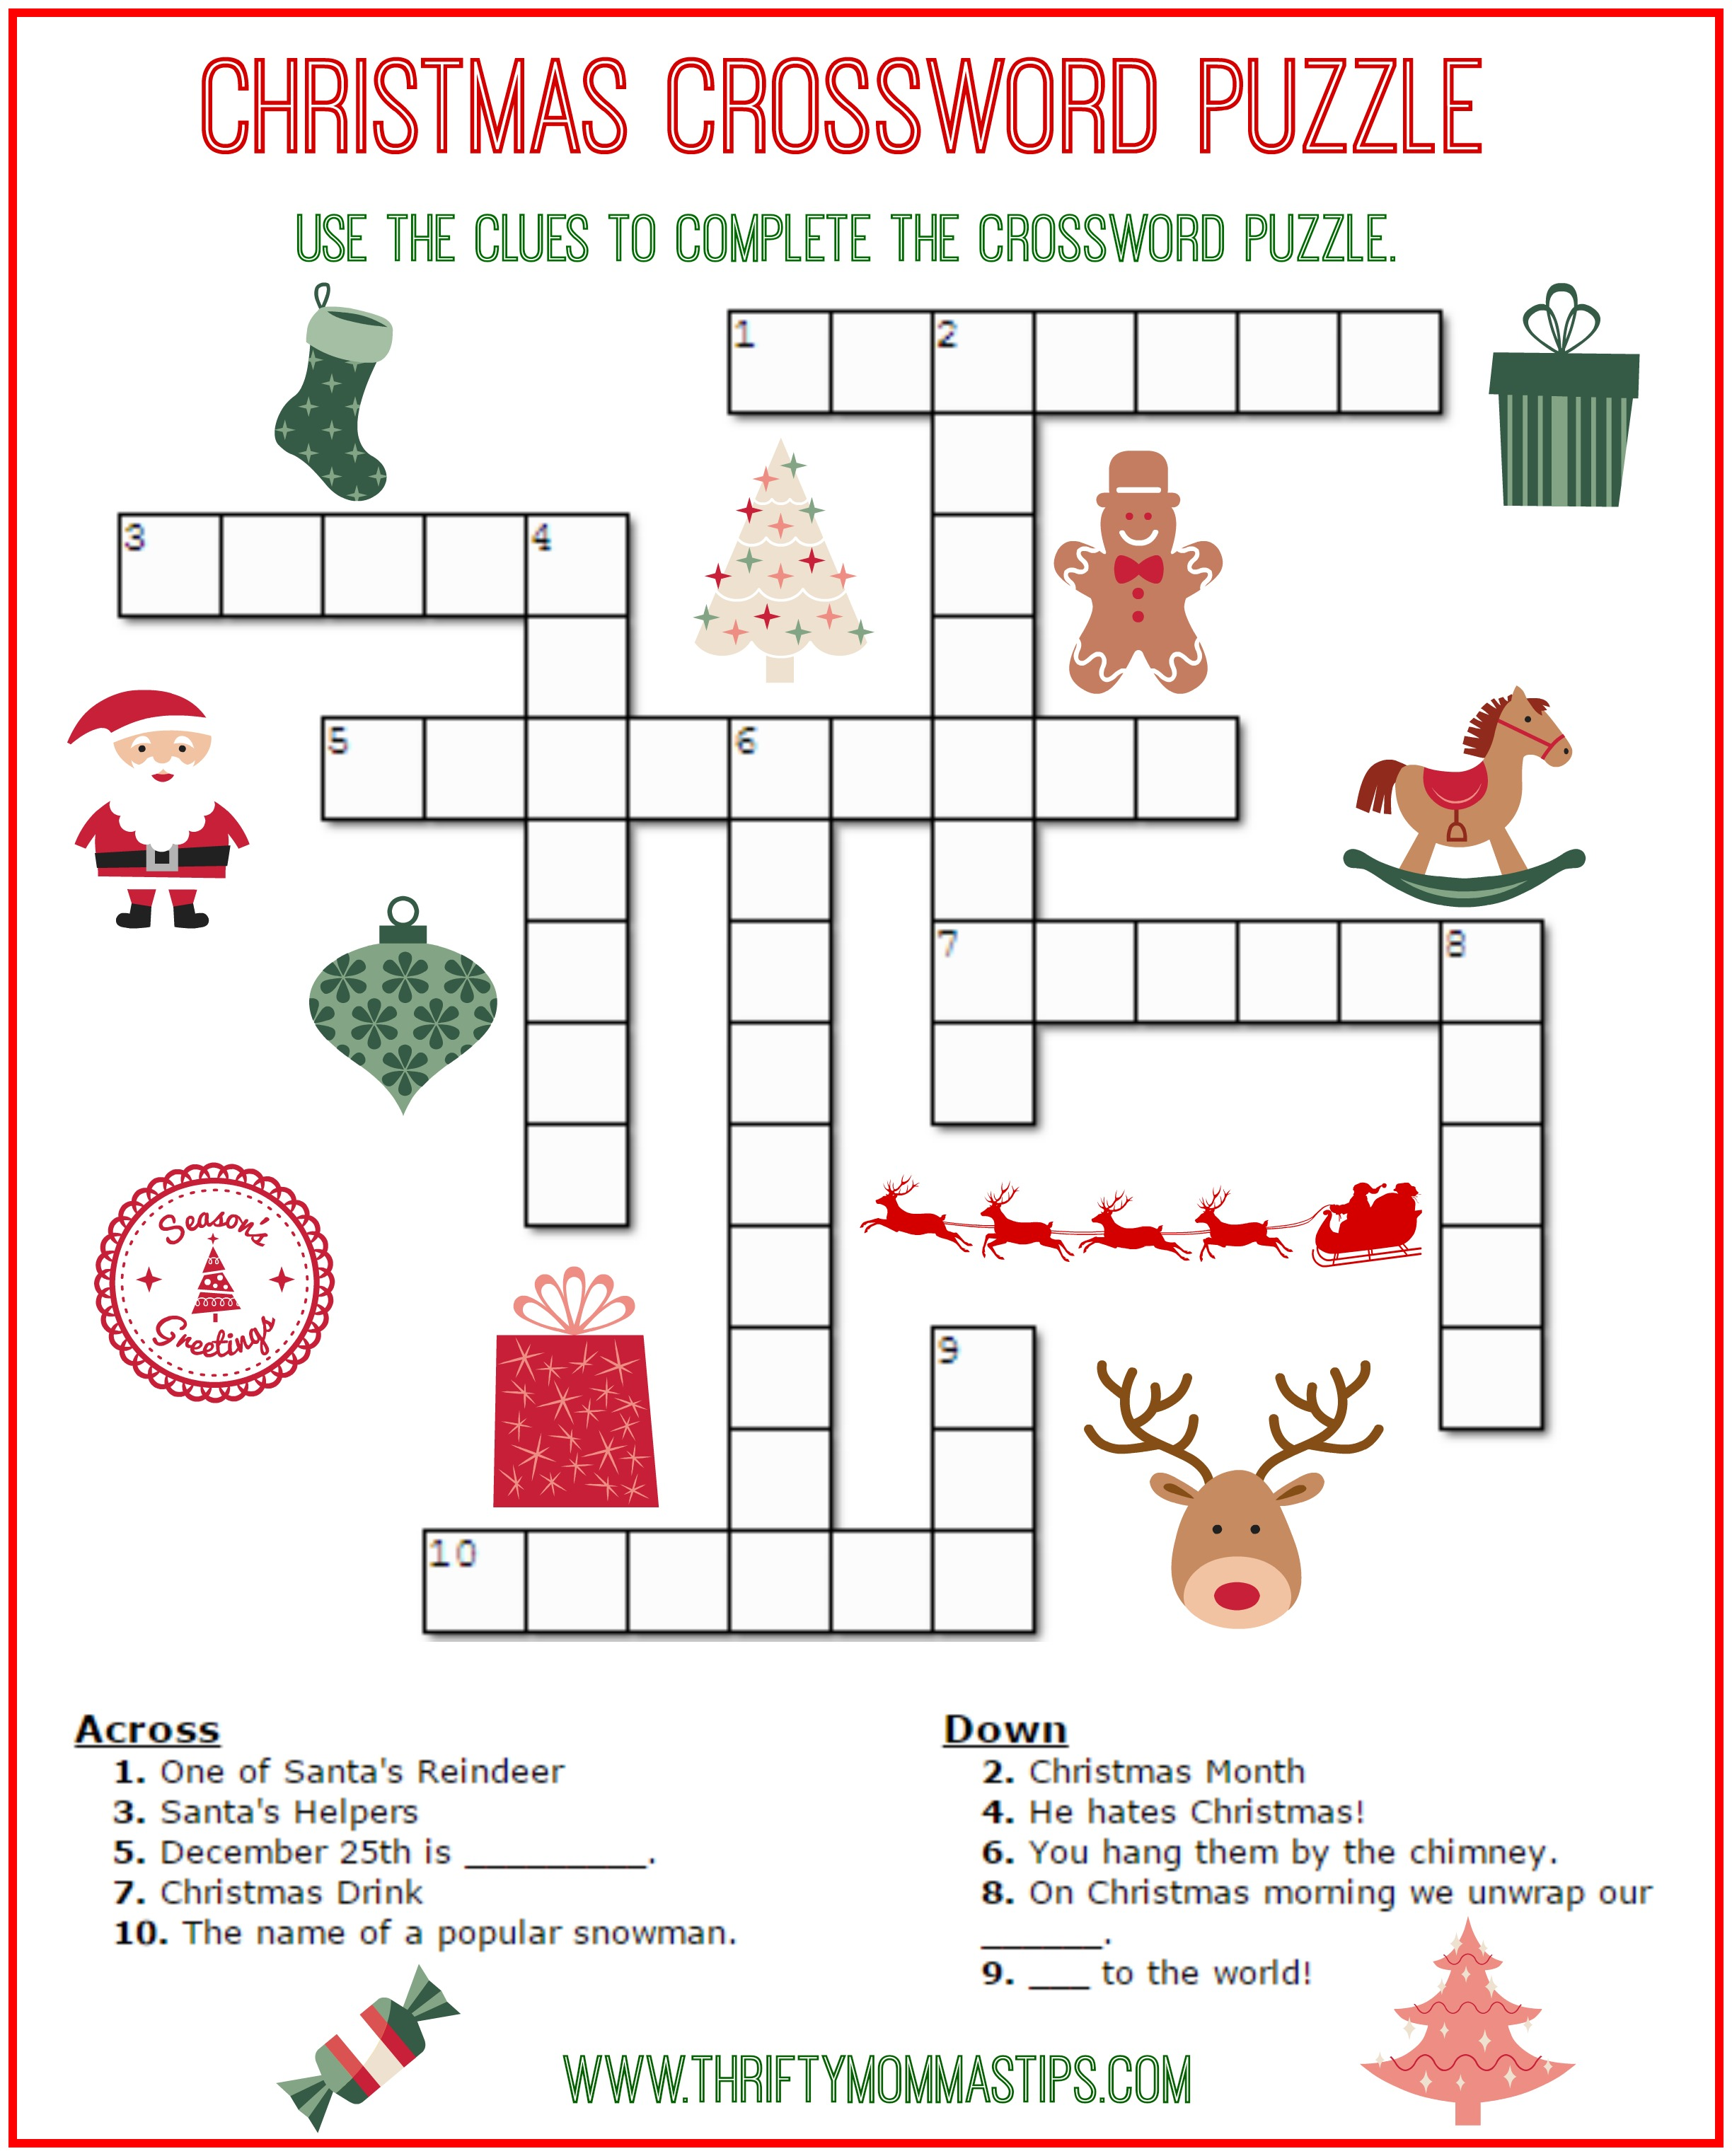 It's just a graphic of Simple Crossword Puzzles Printable with general knowledge